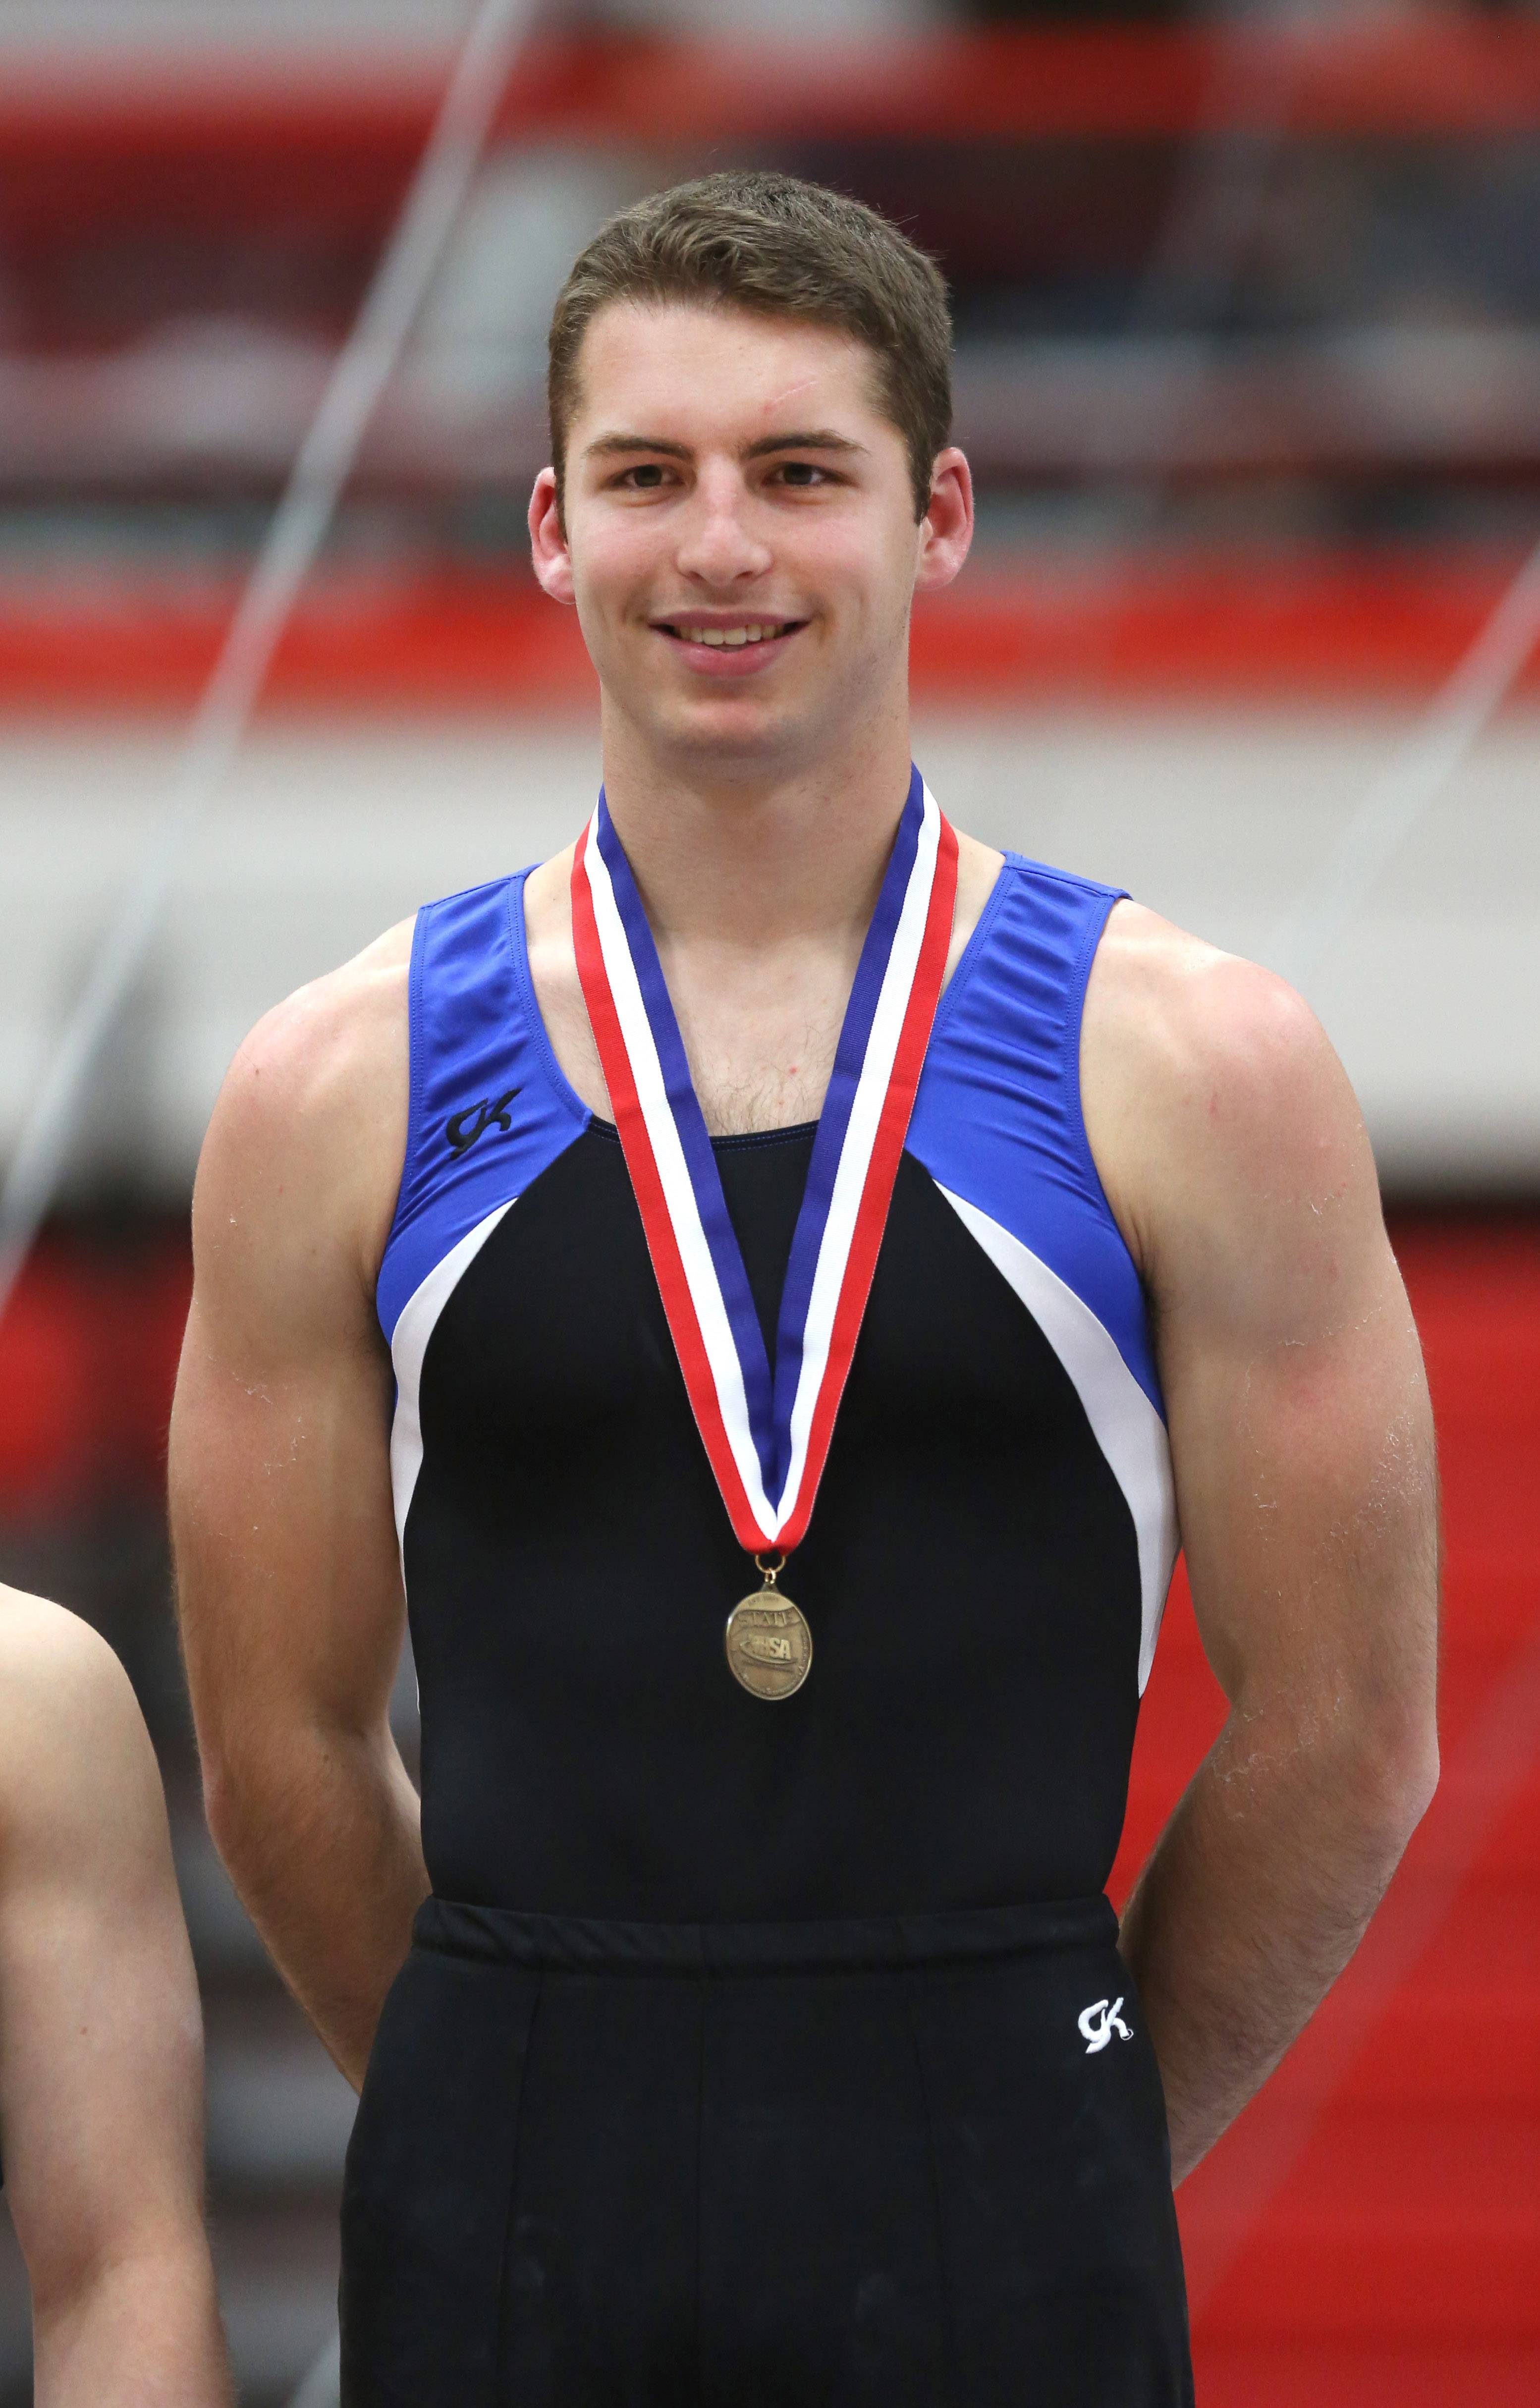 Wheaton Warrenville co-op's David MacDonald gets comfortable on the winners stand during the state boys gymnastics finals Saturday at Hinsdale Central.